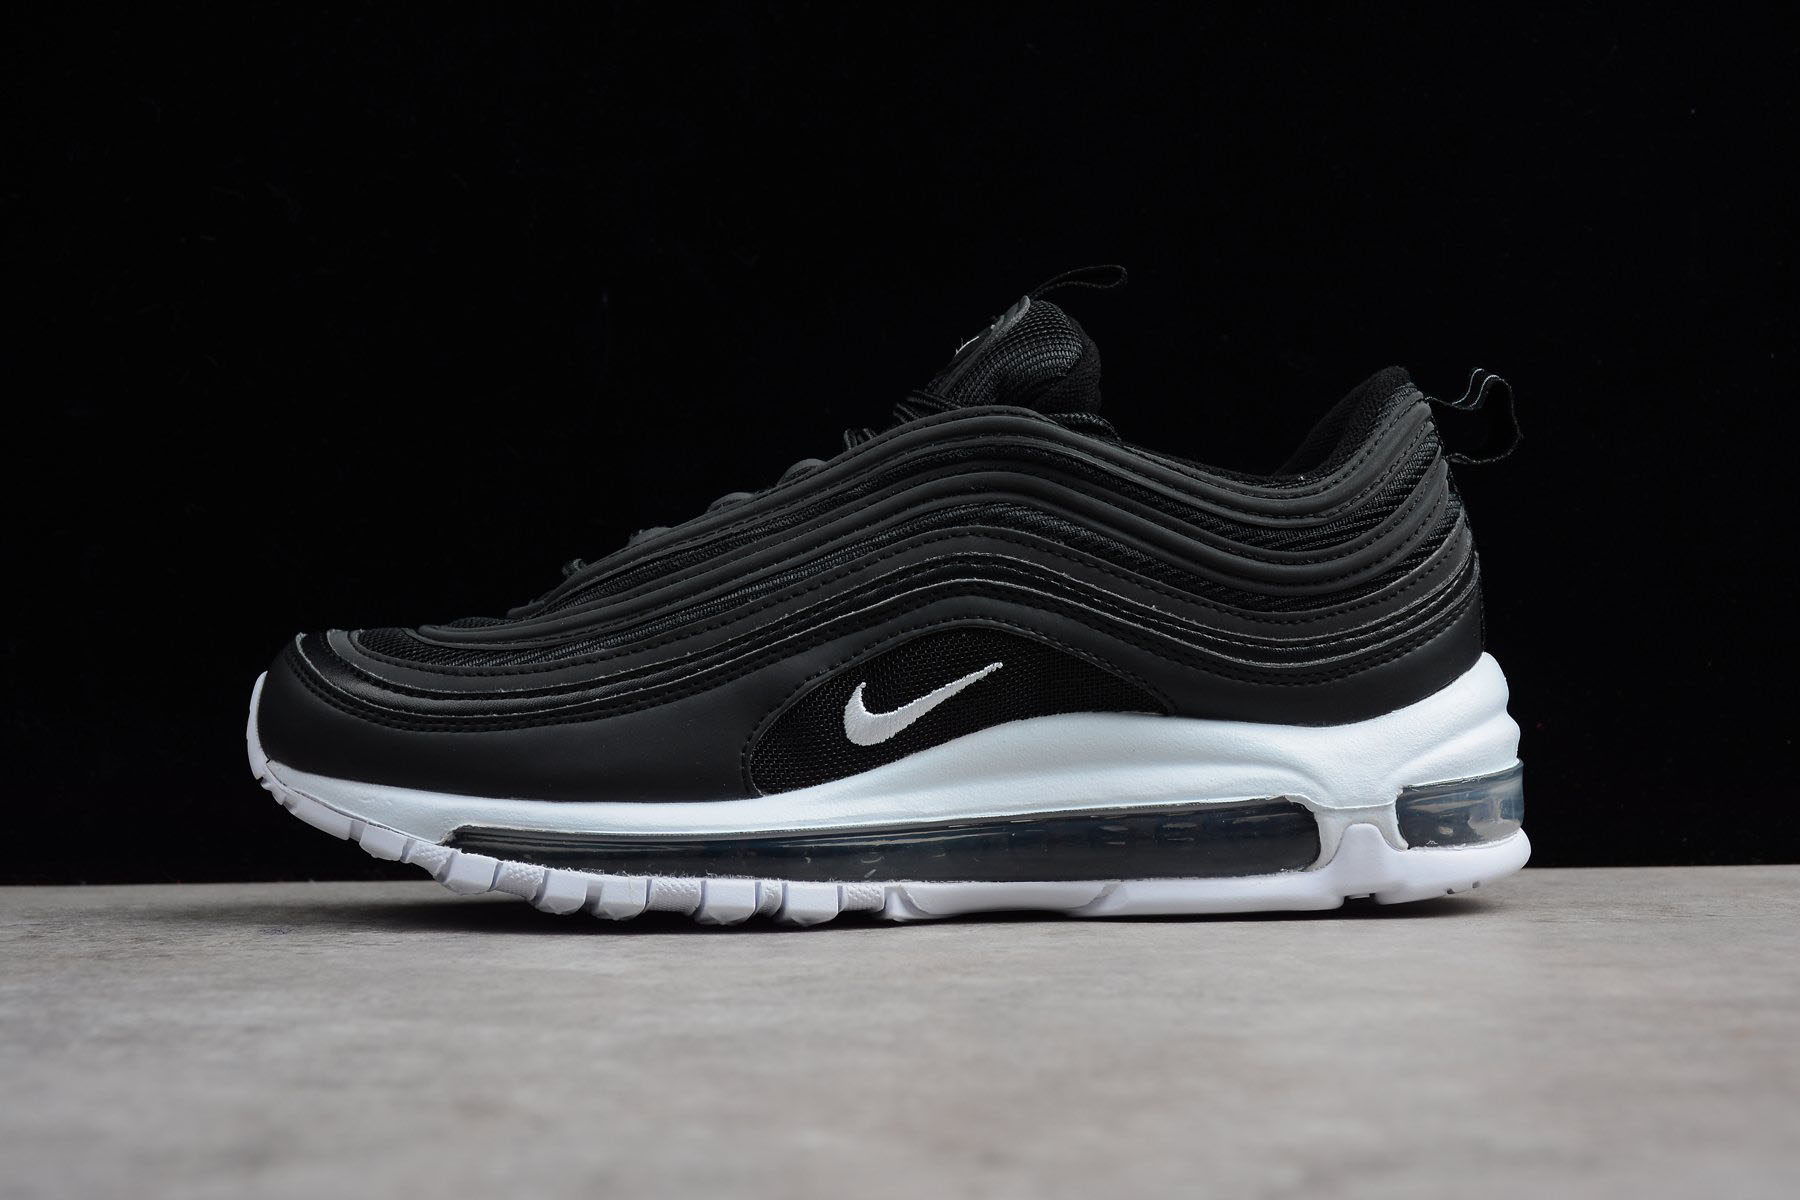 Men's Nike Air Max 97 OG Black/White 921826-001 For Sale